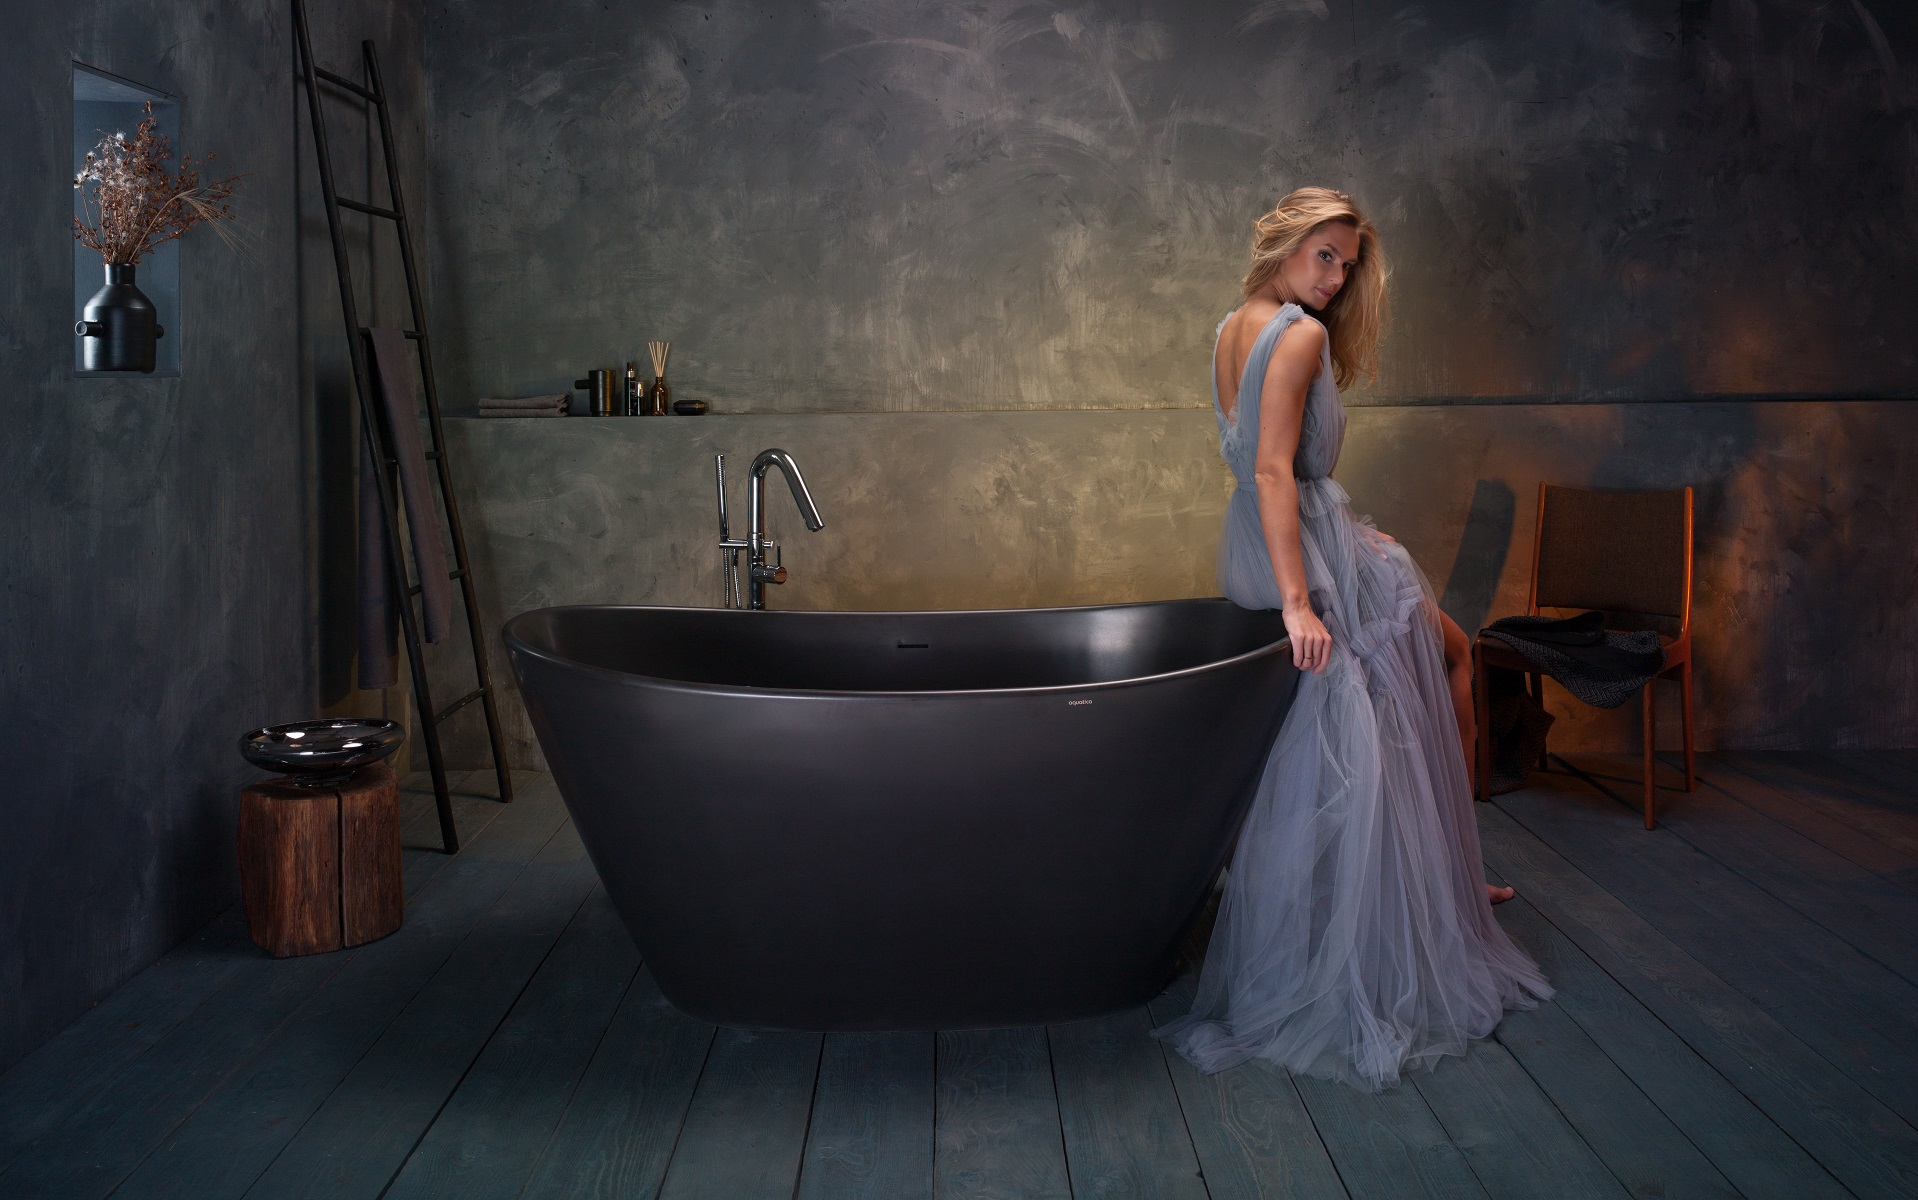 Purescape-748M-Black-Freestanding-Stone-Bathtub-web-(6)